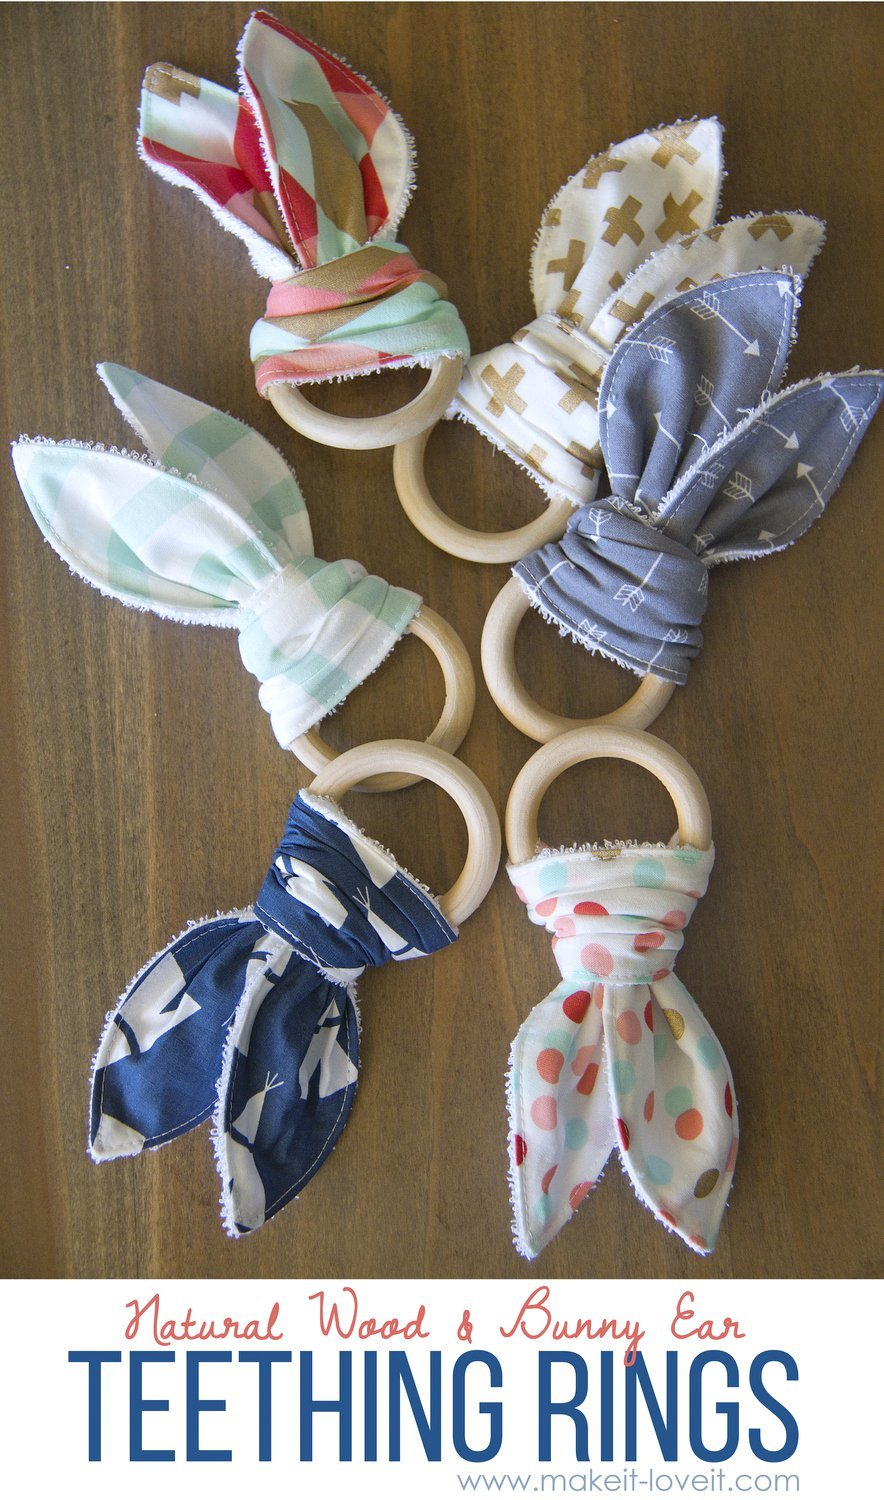 Natural-Wood-Bunny-Ear-Teething-Ring-8